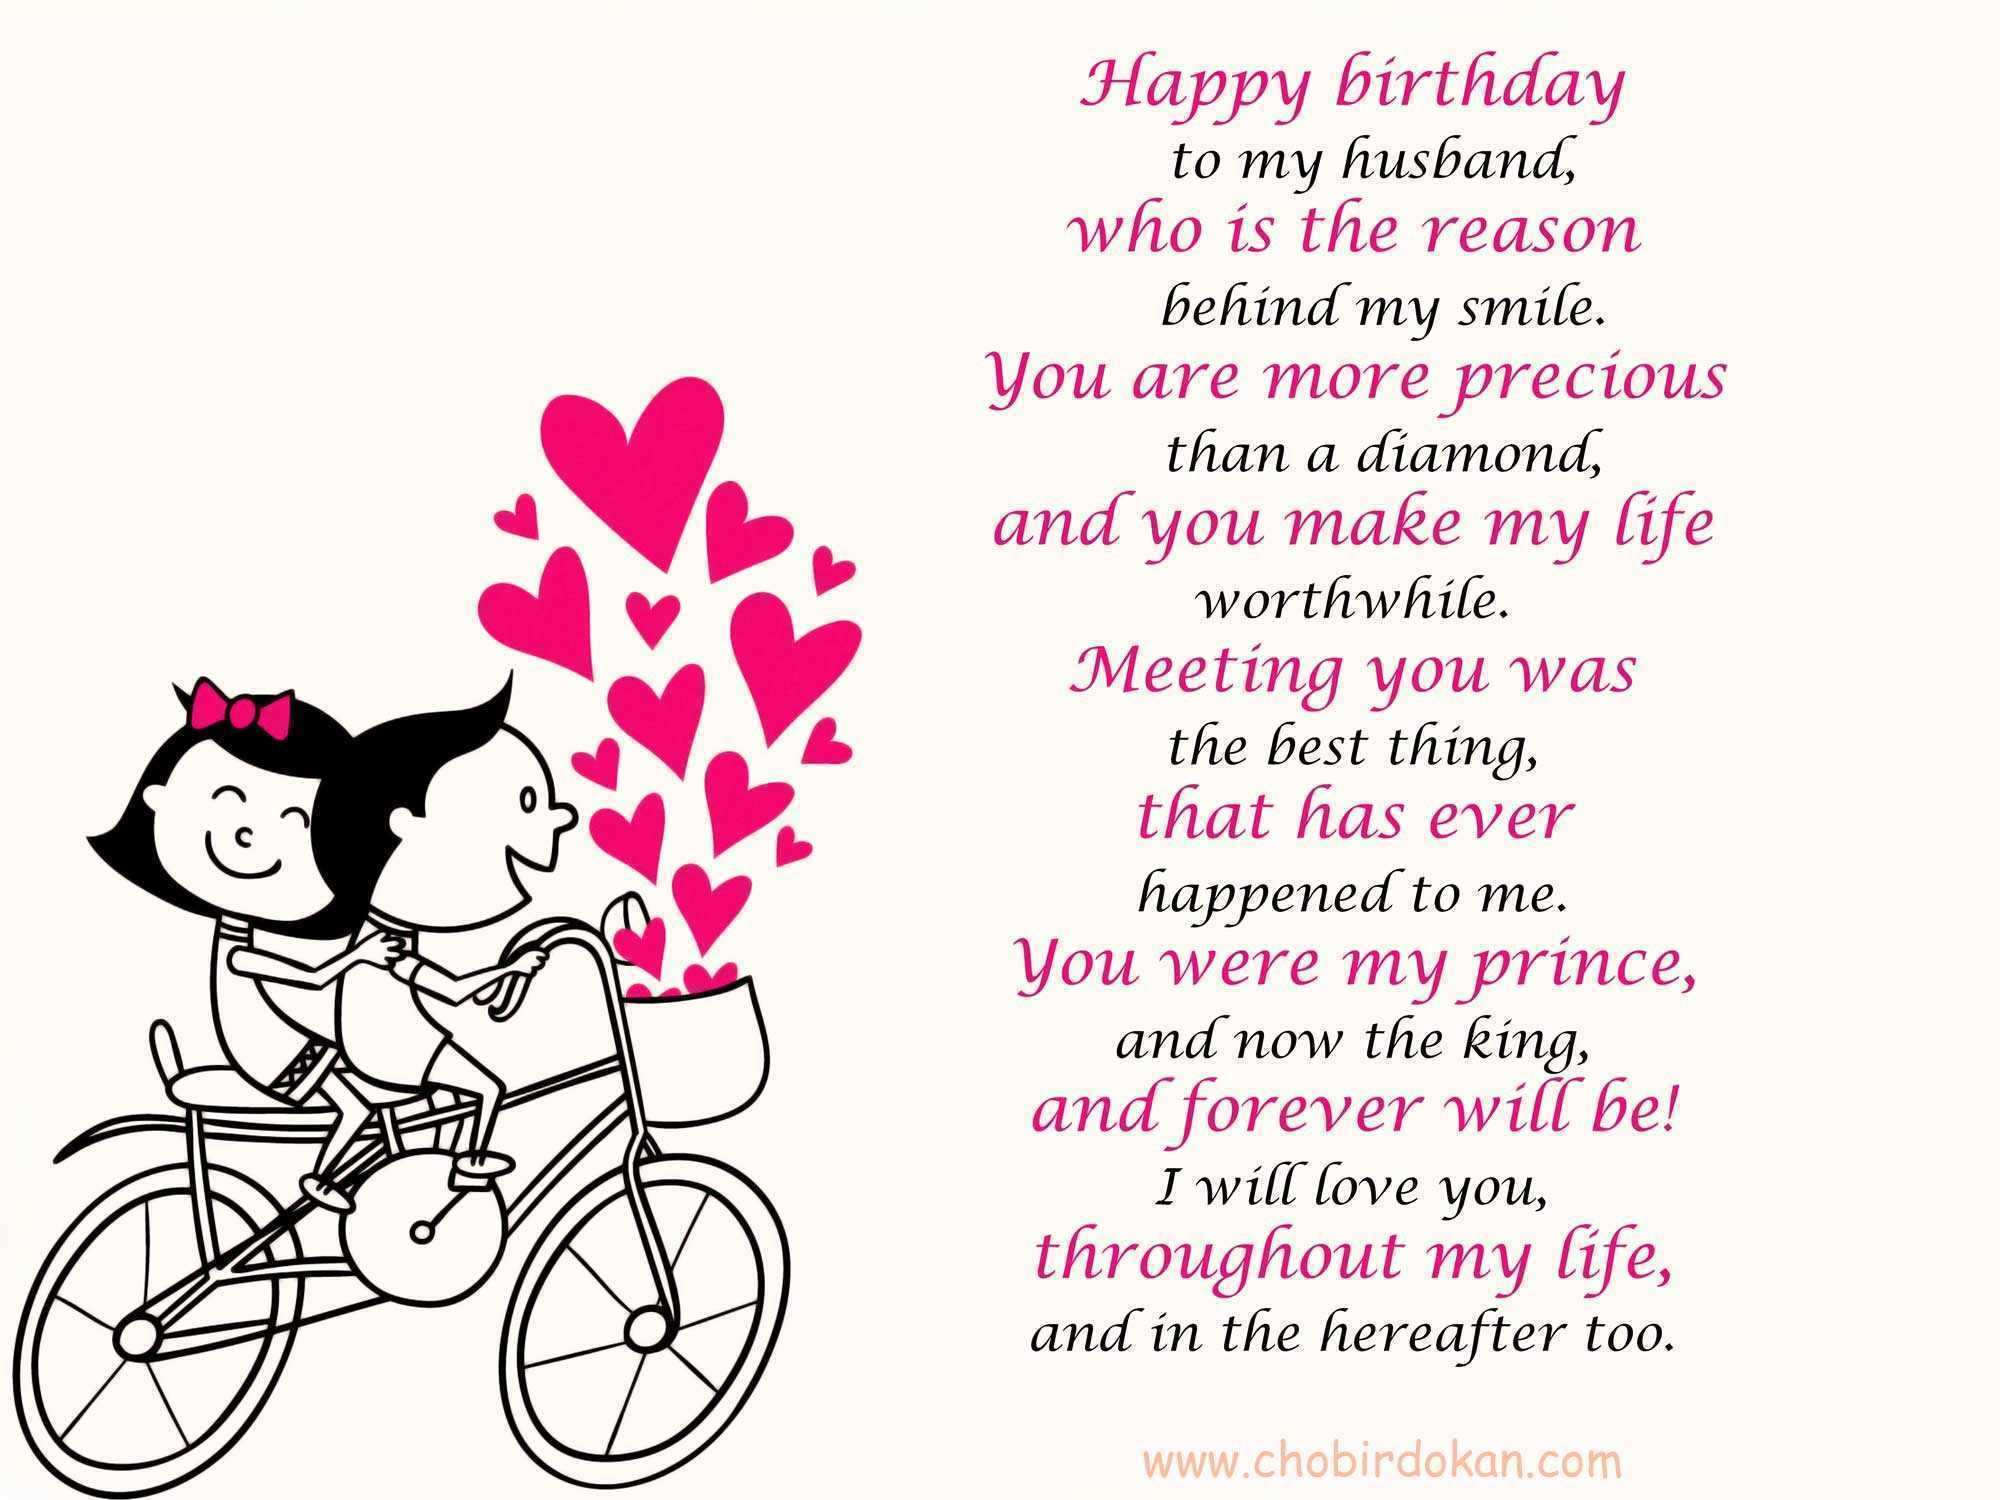 cute birthday rhymes ; cute-birthday-quotes-for-her-luxury-cute-happy-birthday-poem-for-husband-of-cute-birthday-quotes-for-her